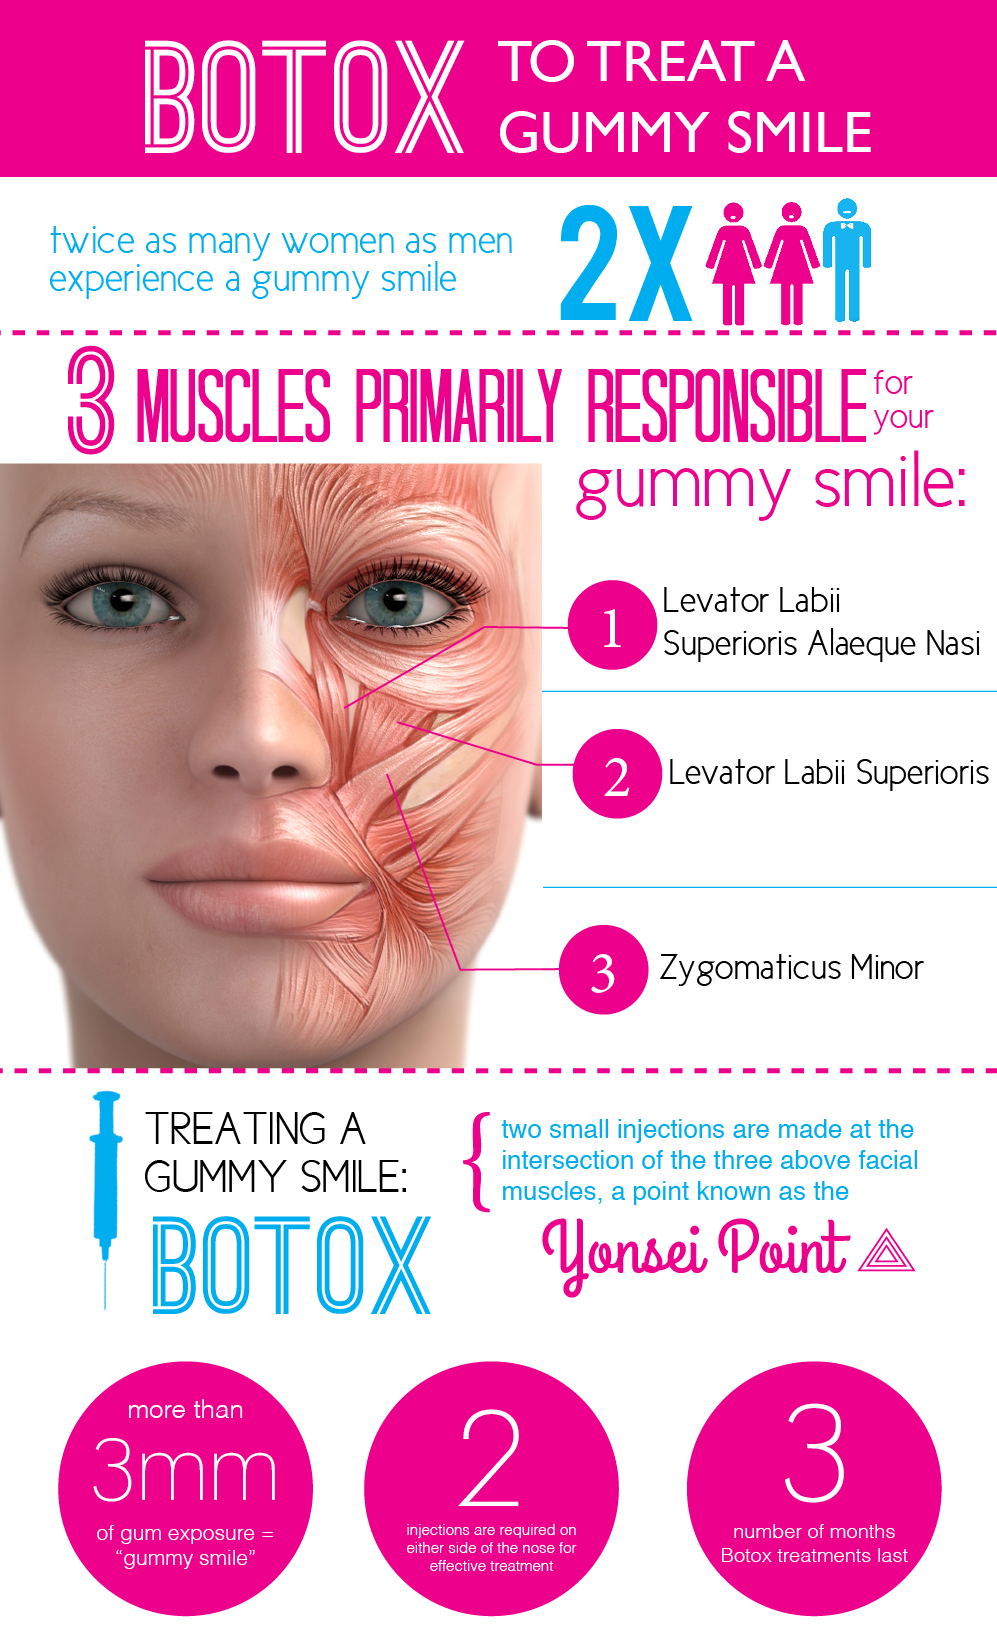 Treat your gummy smile with BOTOX! Order today at: www